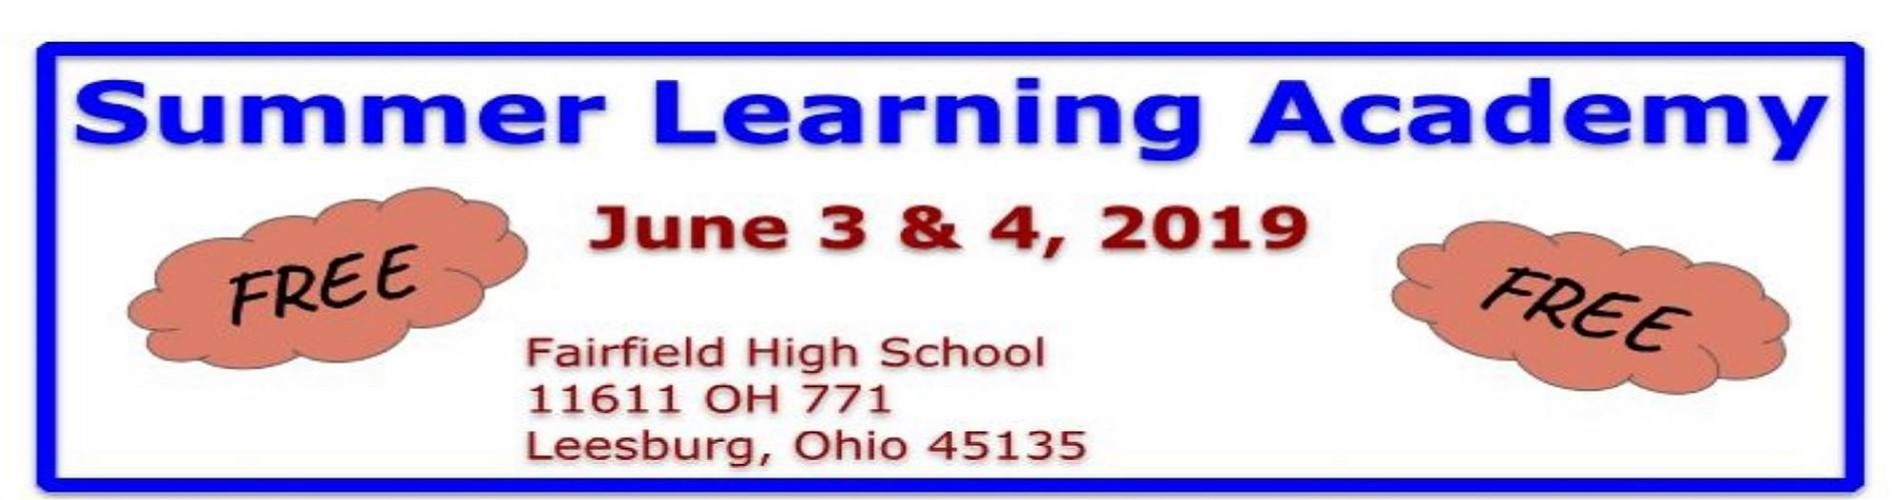 Summer Learning Academy 2019